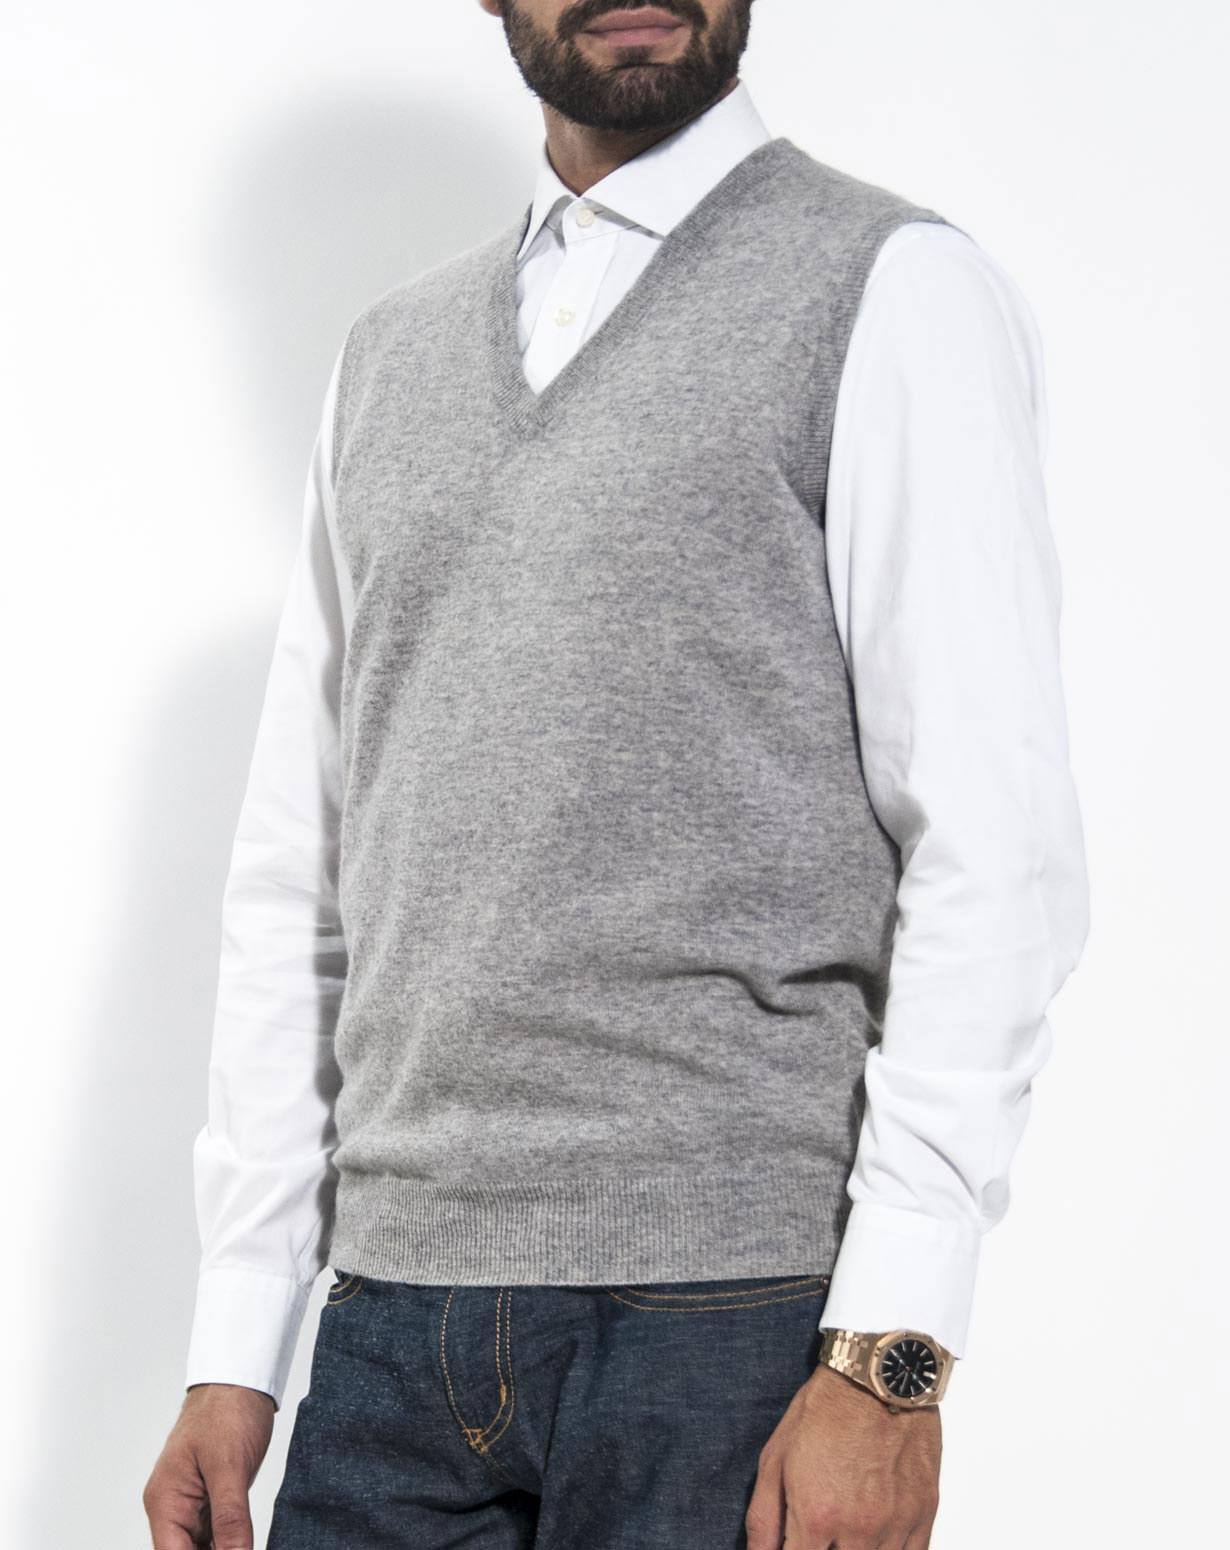 Men's Pure Cashmere Sleeveless Jumper